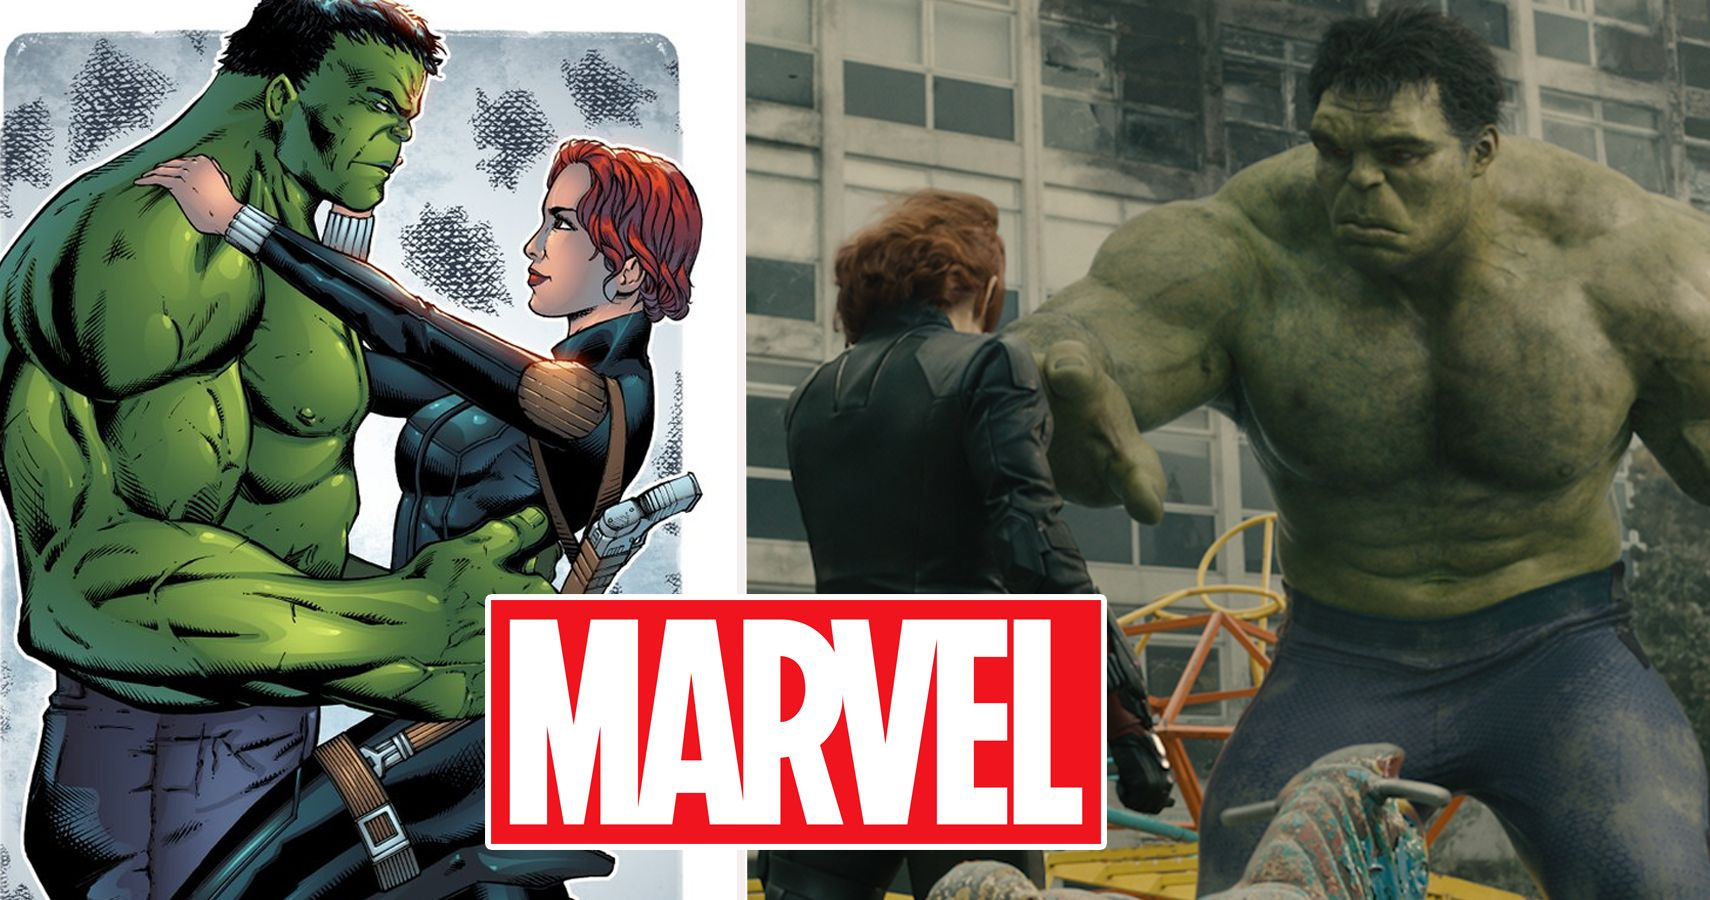 Marvel: 20 Weird Facts About Black Widow And The Hulk's